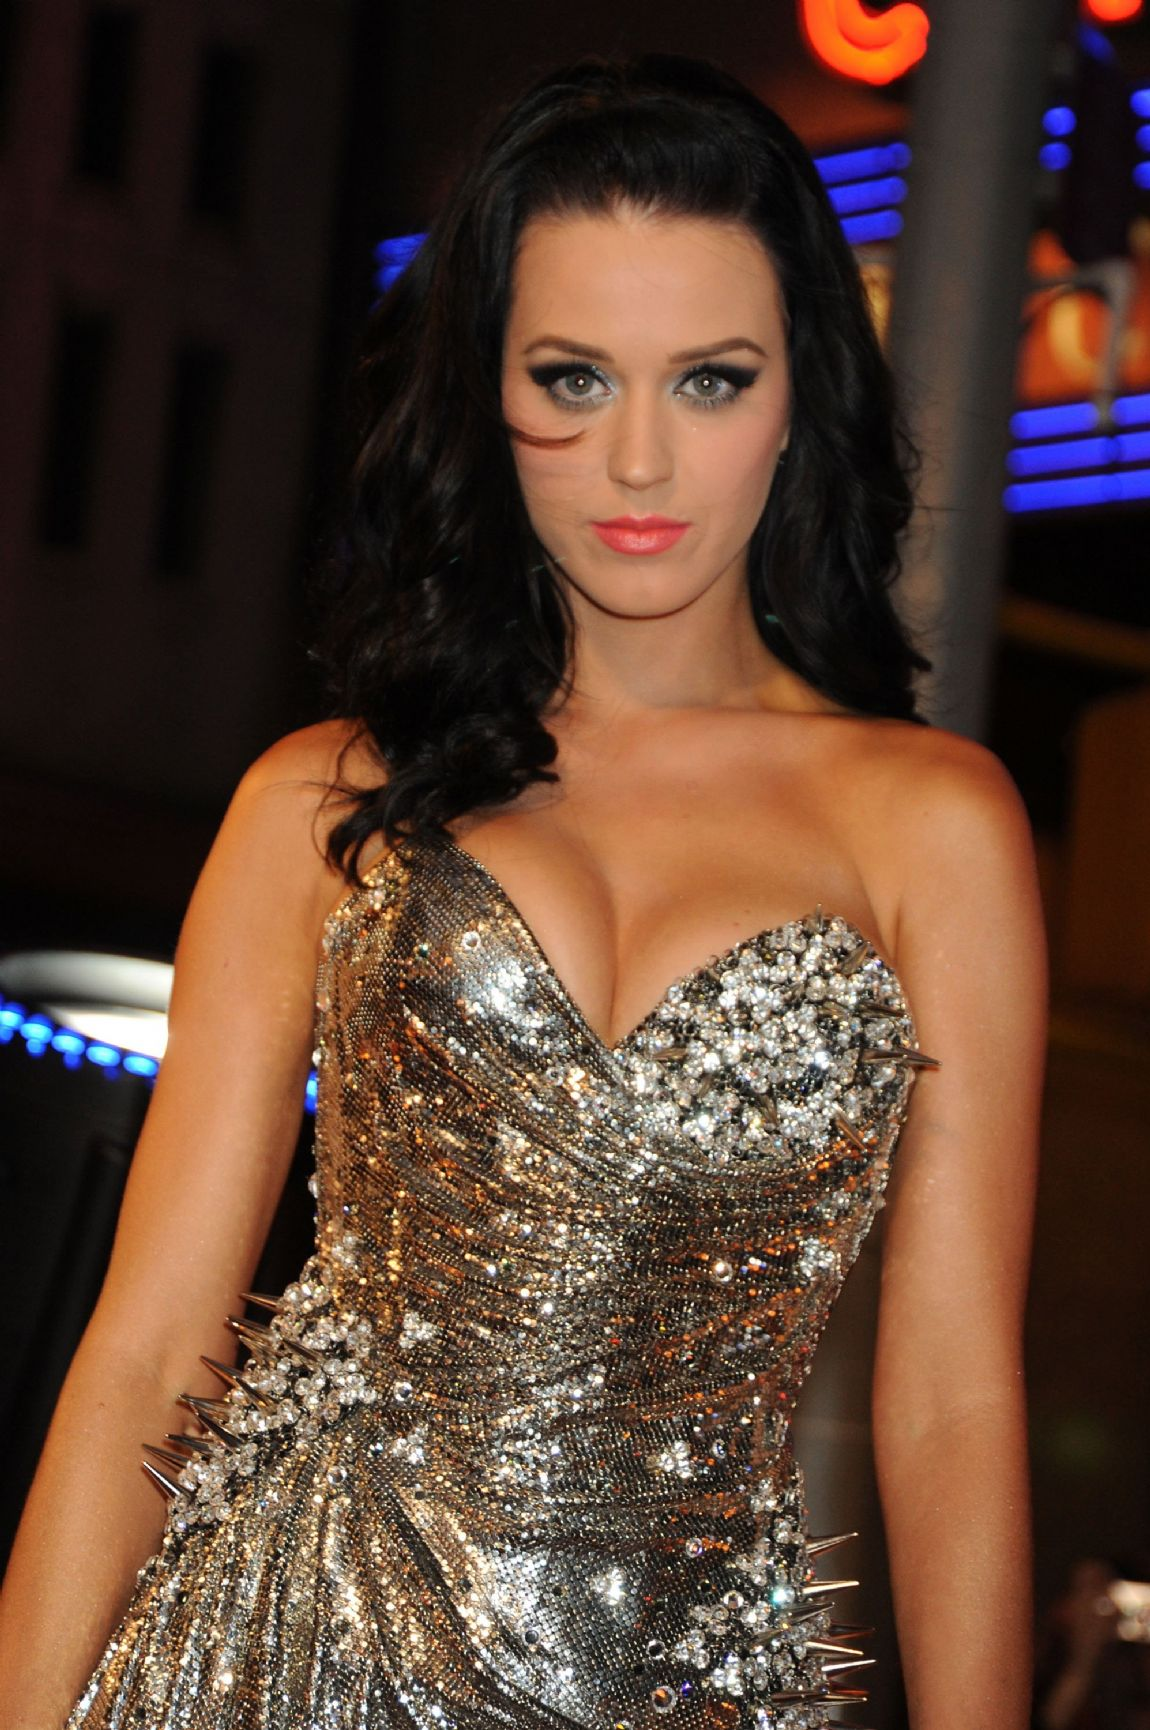 Katy Perry photo #131989